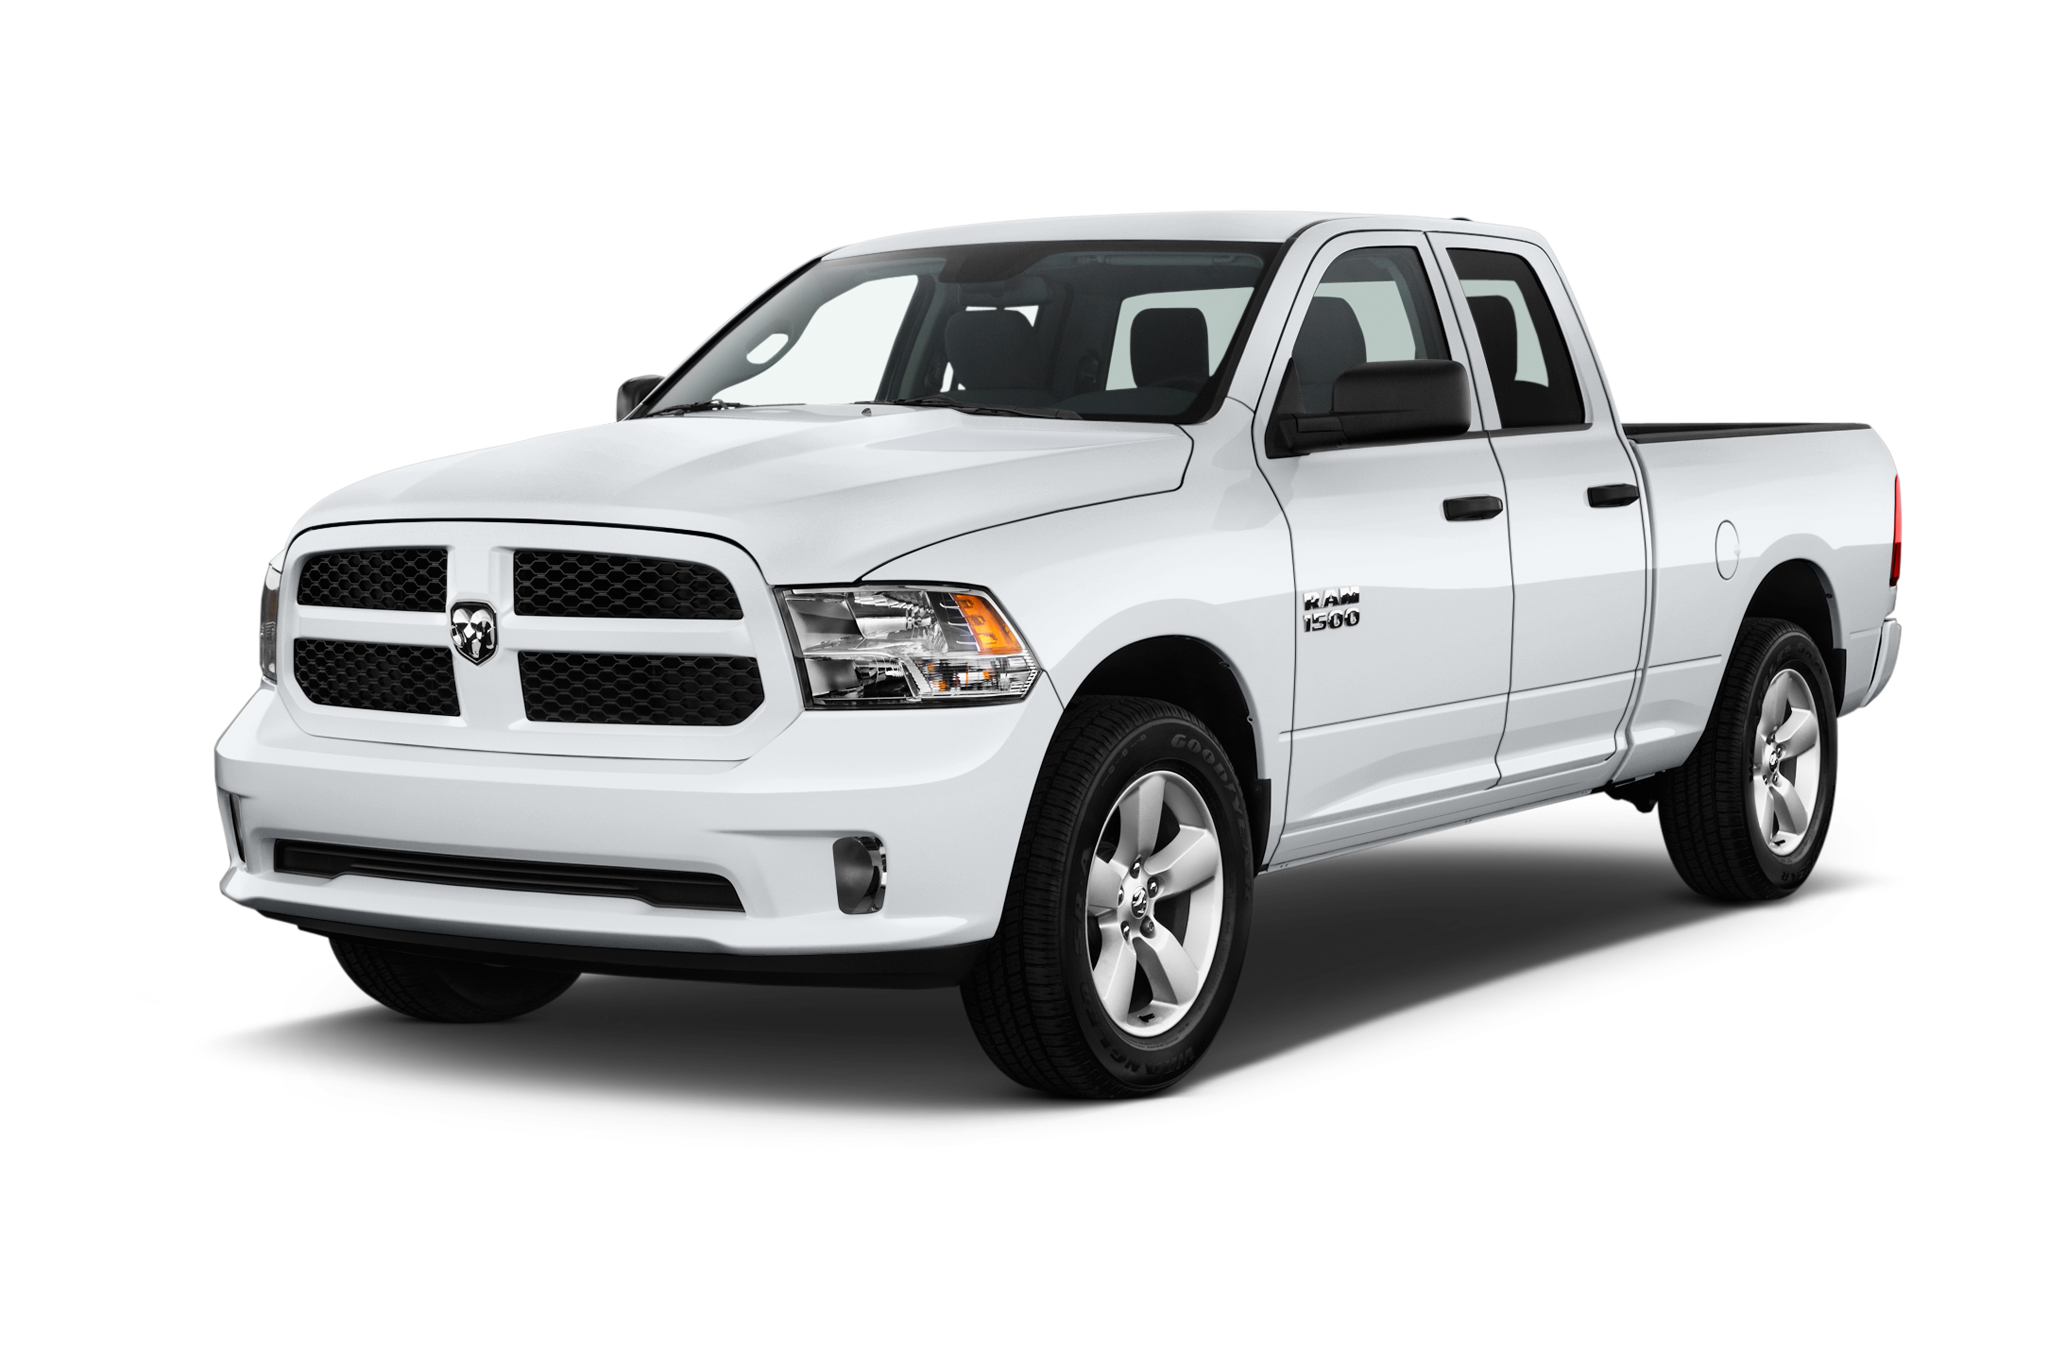 Dodge Ram 1500 for Sale Near Fort St. John